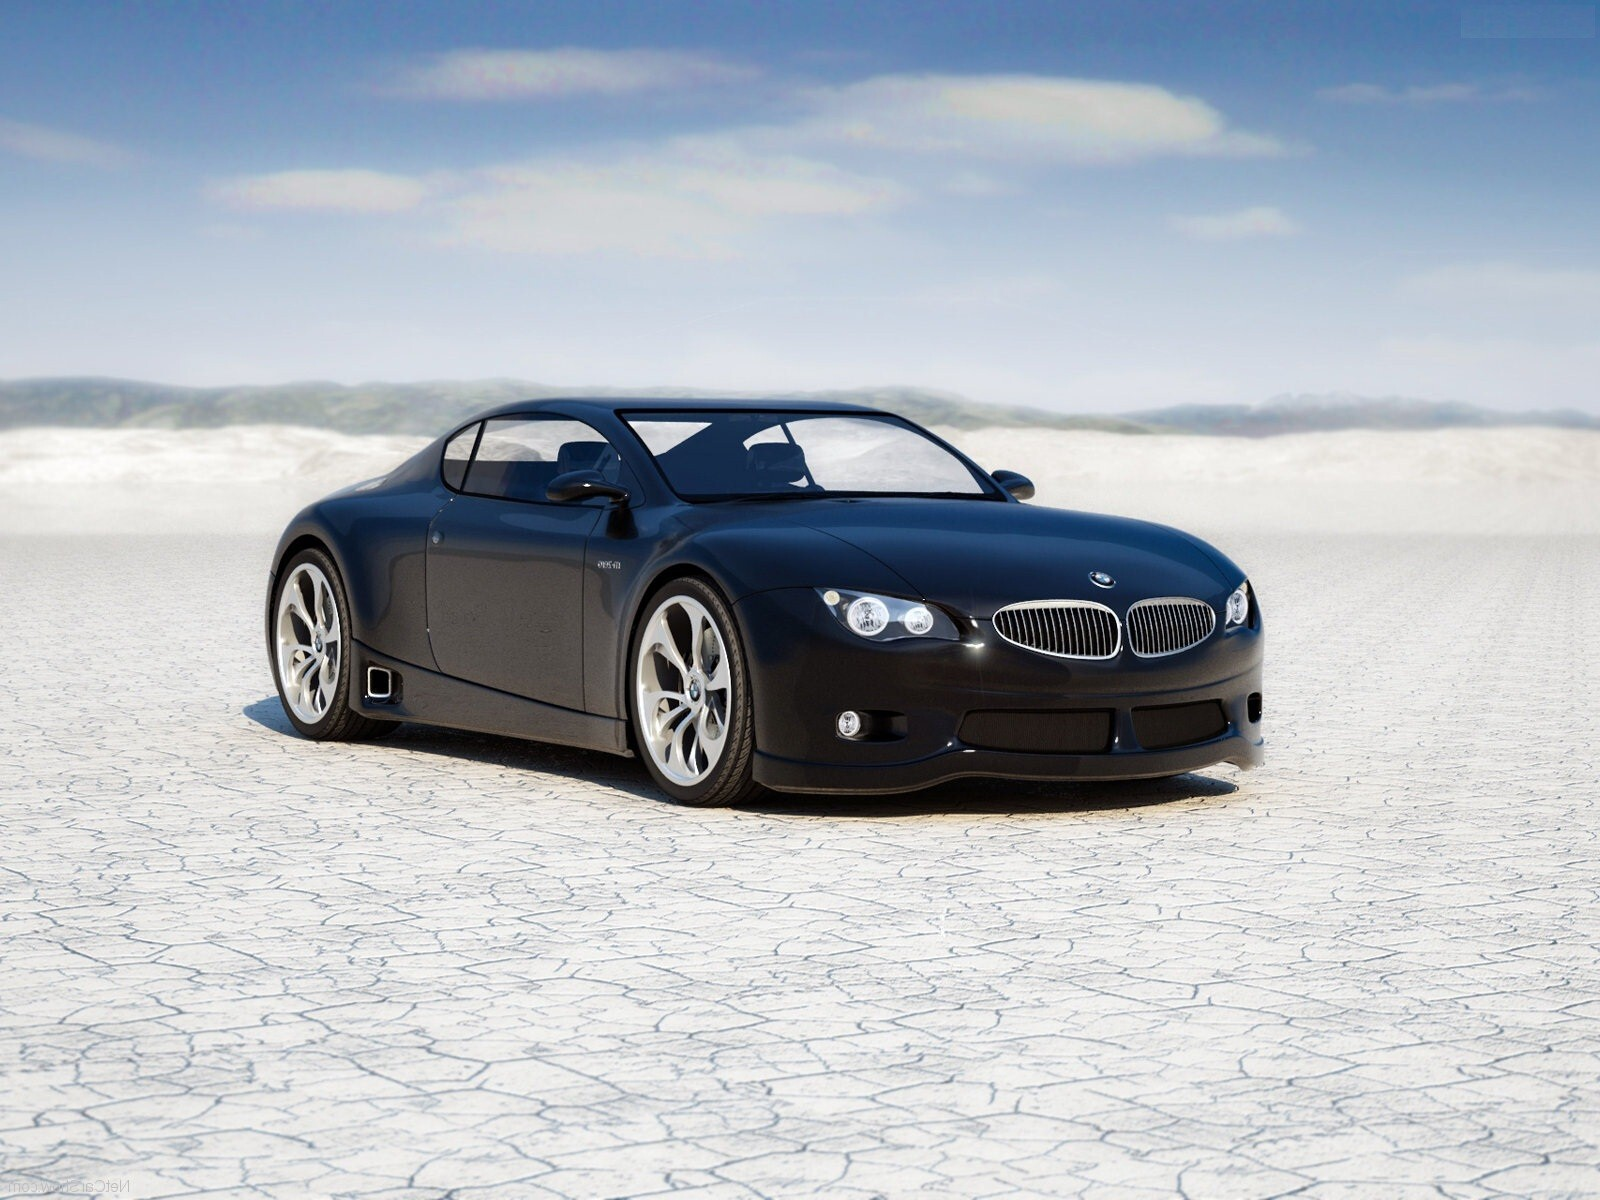 black bmw m zero luxury car hd wallpaper | hd wallpapers